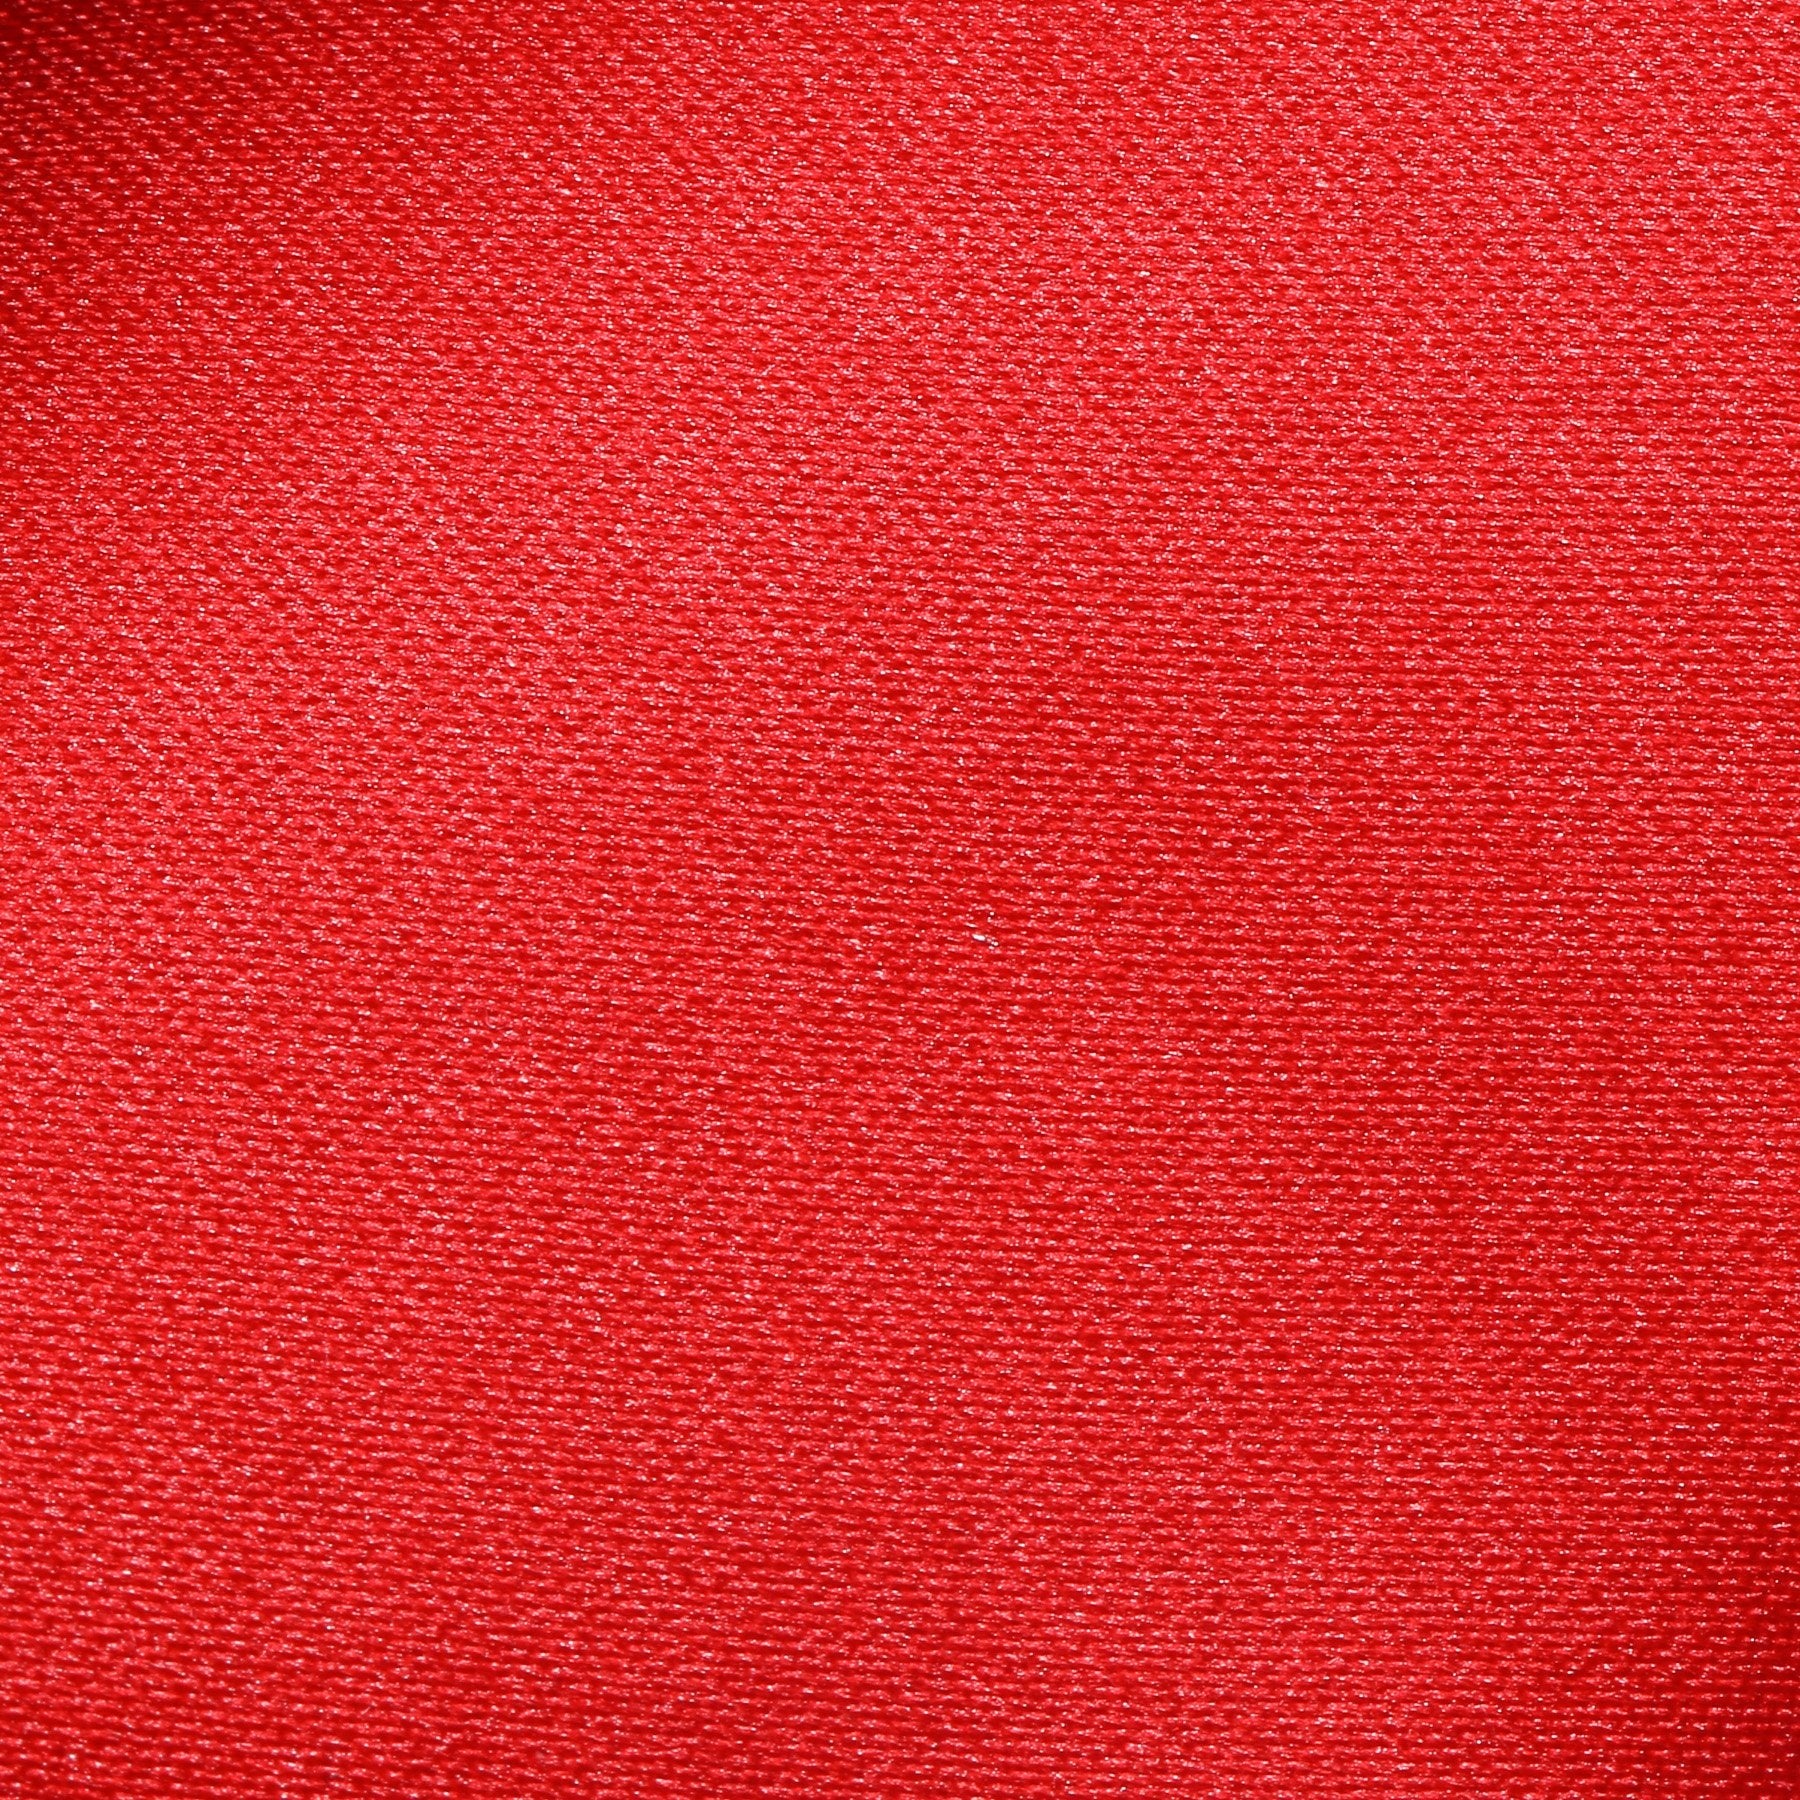 Folkespeare Scarlet Red Satin Clip On Tie Fabric